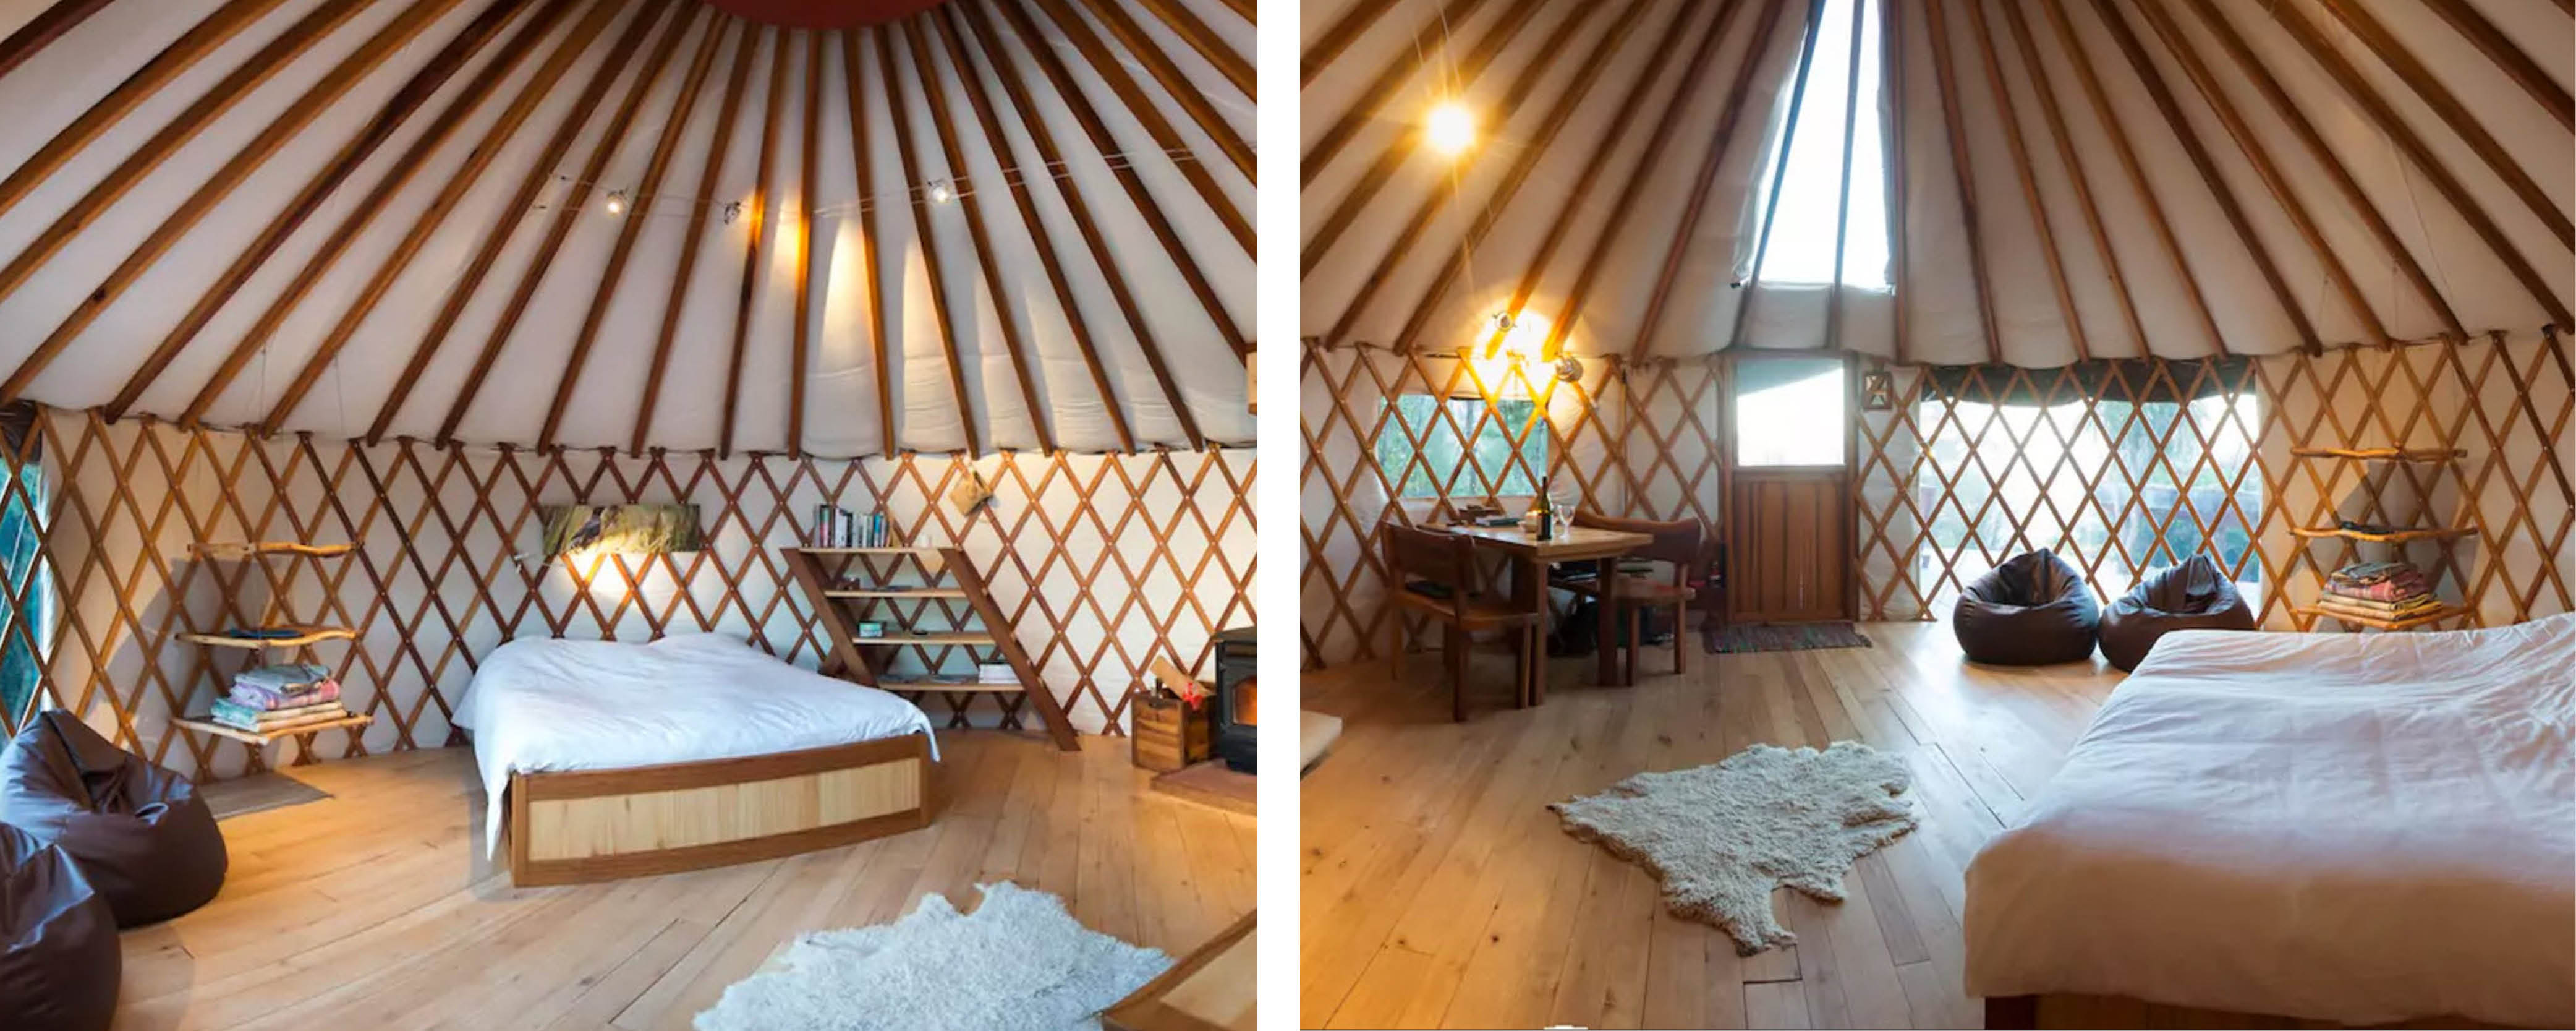 New-Zealand's-Most-Stylish-Airbnb's-Gallery-1000x40013